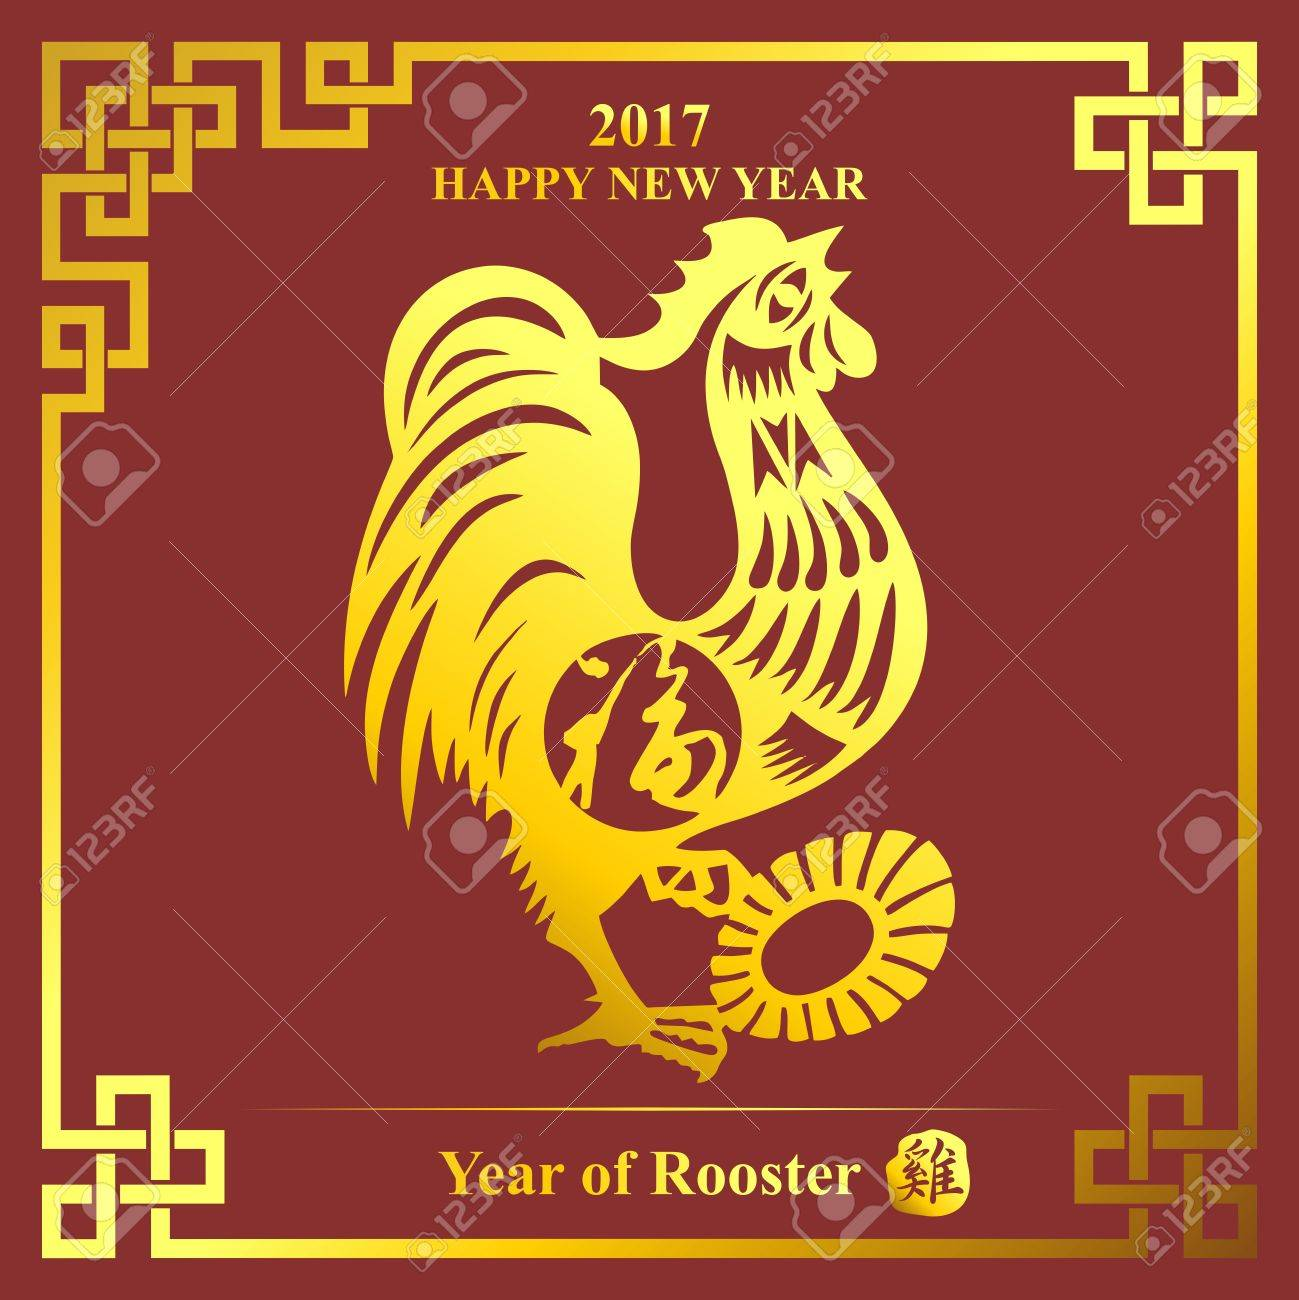 New year 2017 greeting pictures year of rooster happy chinese new year - Vector Year Of Rooster Design Graphics Elements Greeting Card Chinese New Year